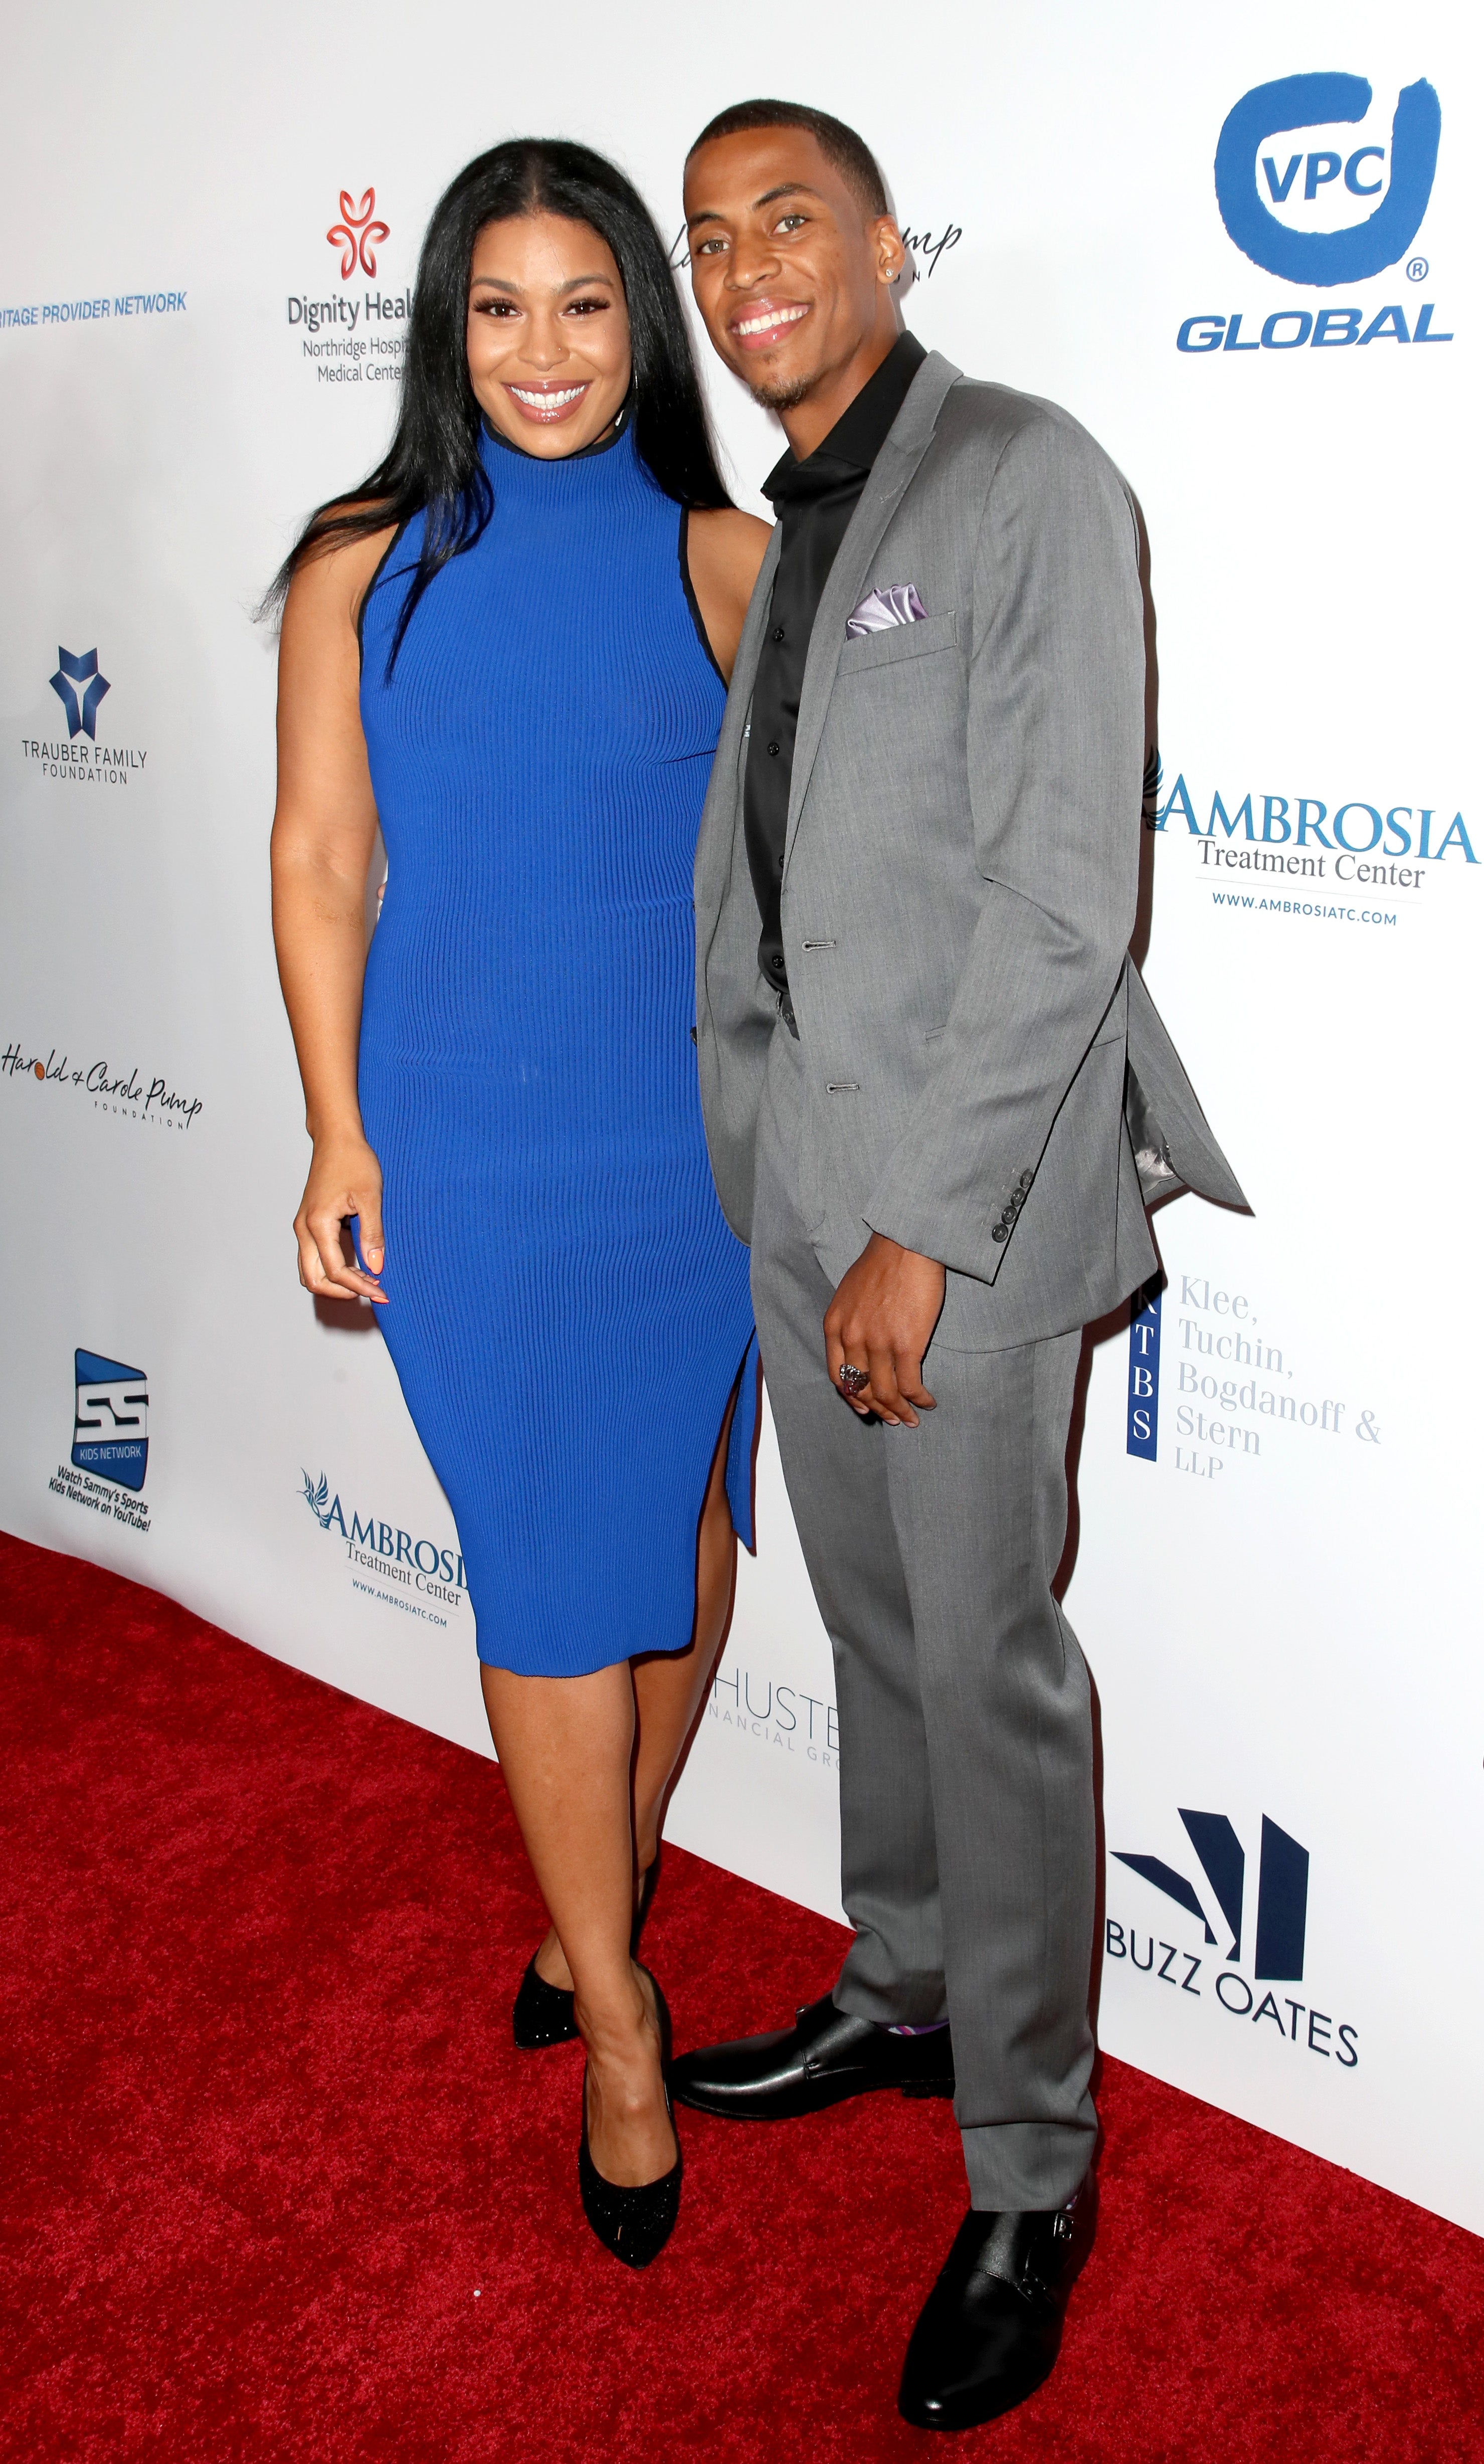 Jordin Sparks Makes It Red Carpet Official With Her New Boyfriend